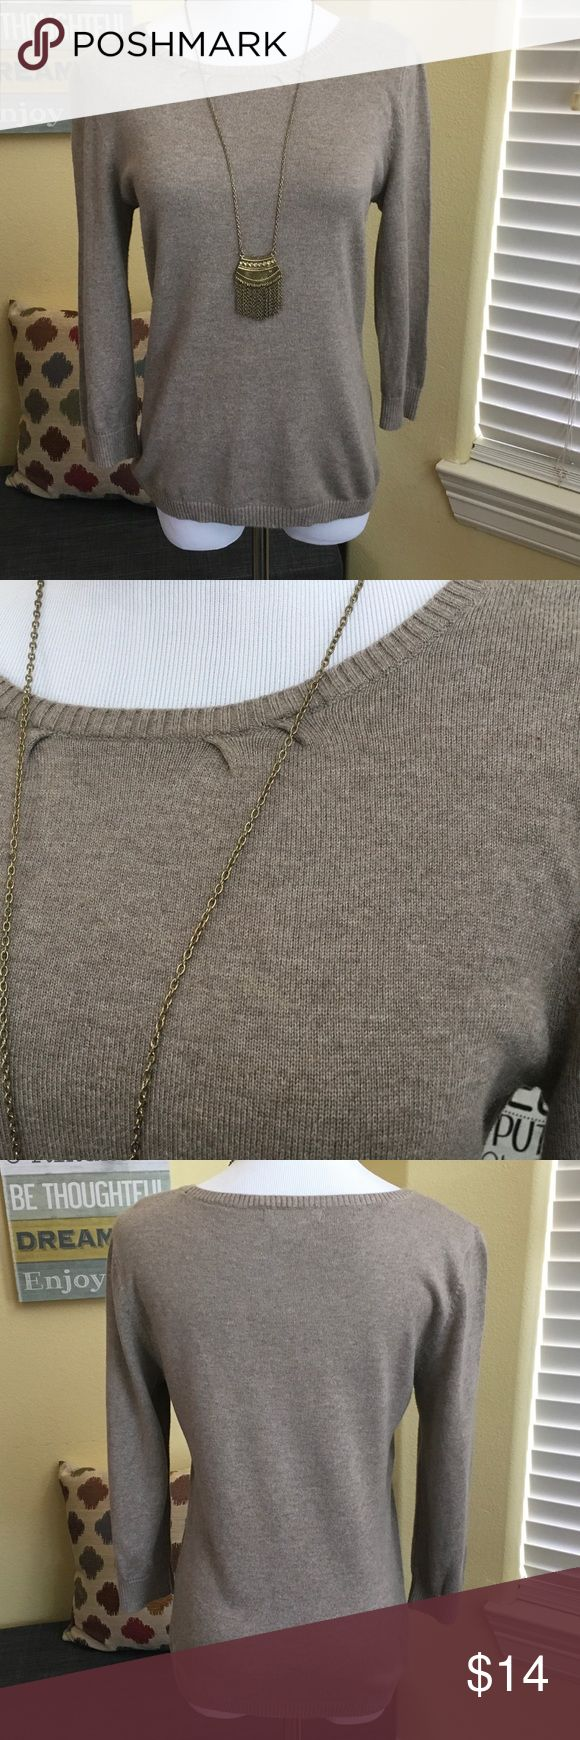 3/4 Sleeve Boat Neck Sweater This sweater is made from lightweight fabric that is soft and thin which makes it a great layering piece. Pair with a white collard shirt and roll up the sleeves with a chic look that will compliment your pencil skirt or dark denim skinny jeans. This top is lightweight and can be worn year-round over a sundress or paired with shorts and sandals for the beach! There is a small stain area that is not too noticeable. The price reflects this minor imperfection…